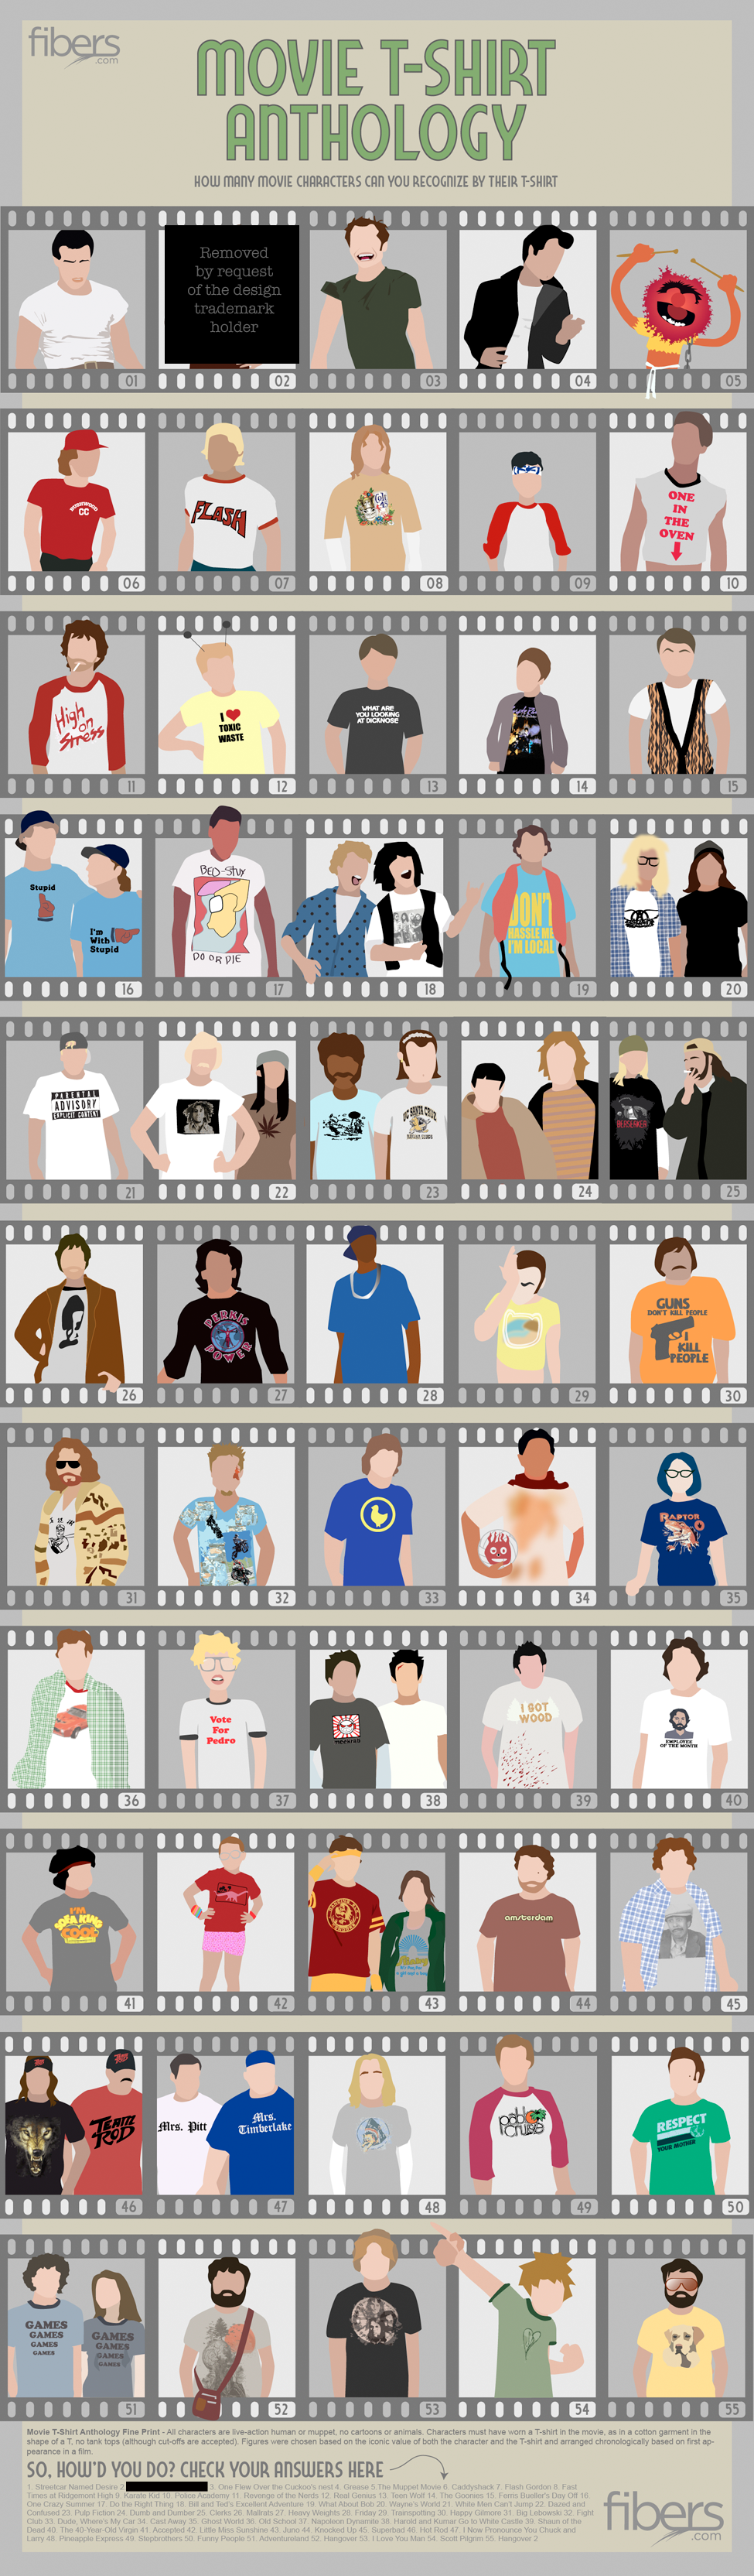 T-Shirts in Movies